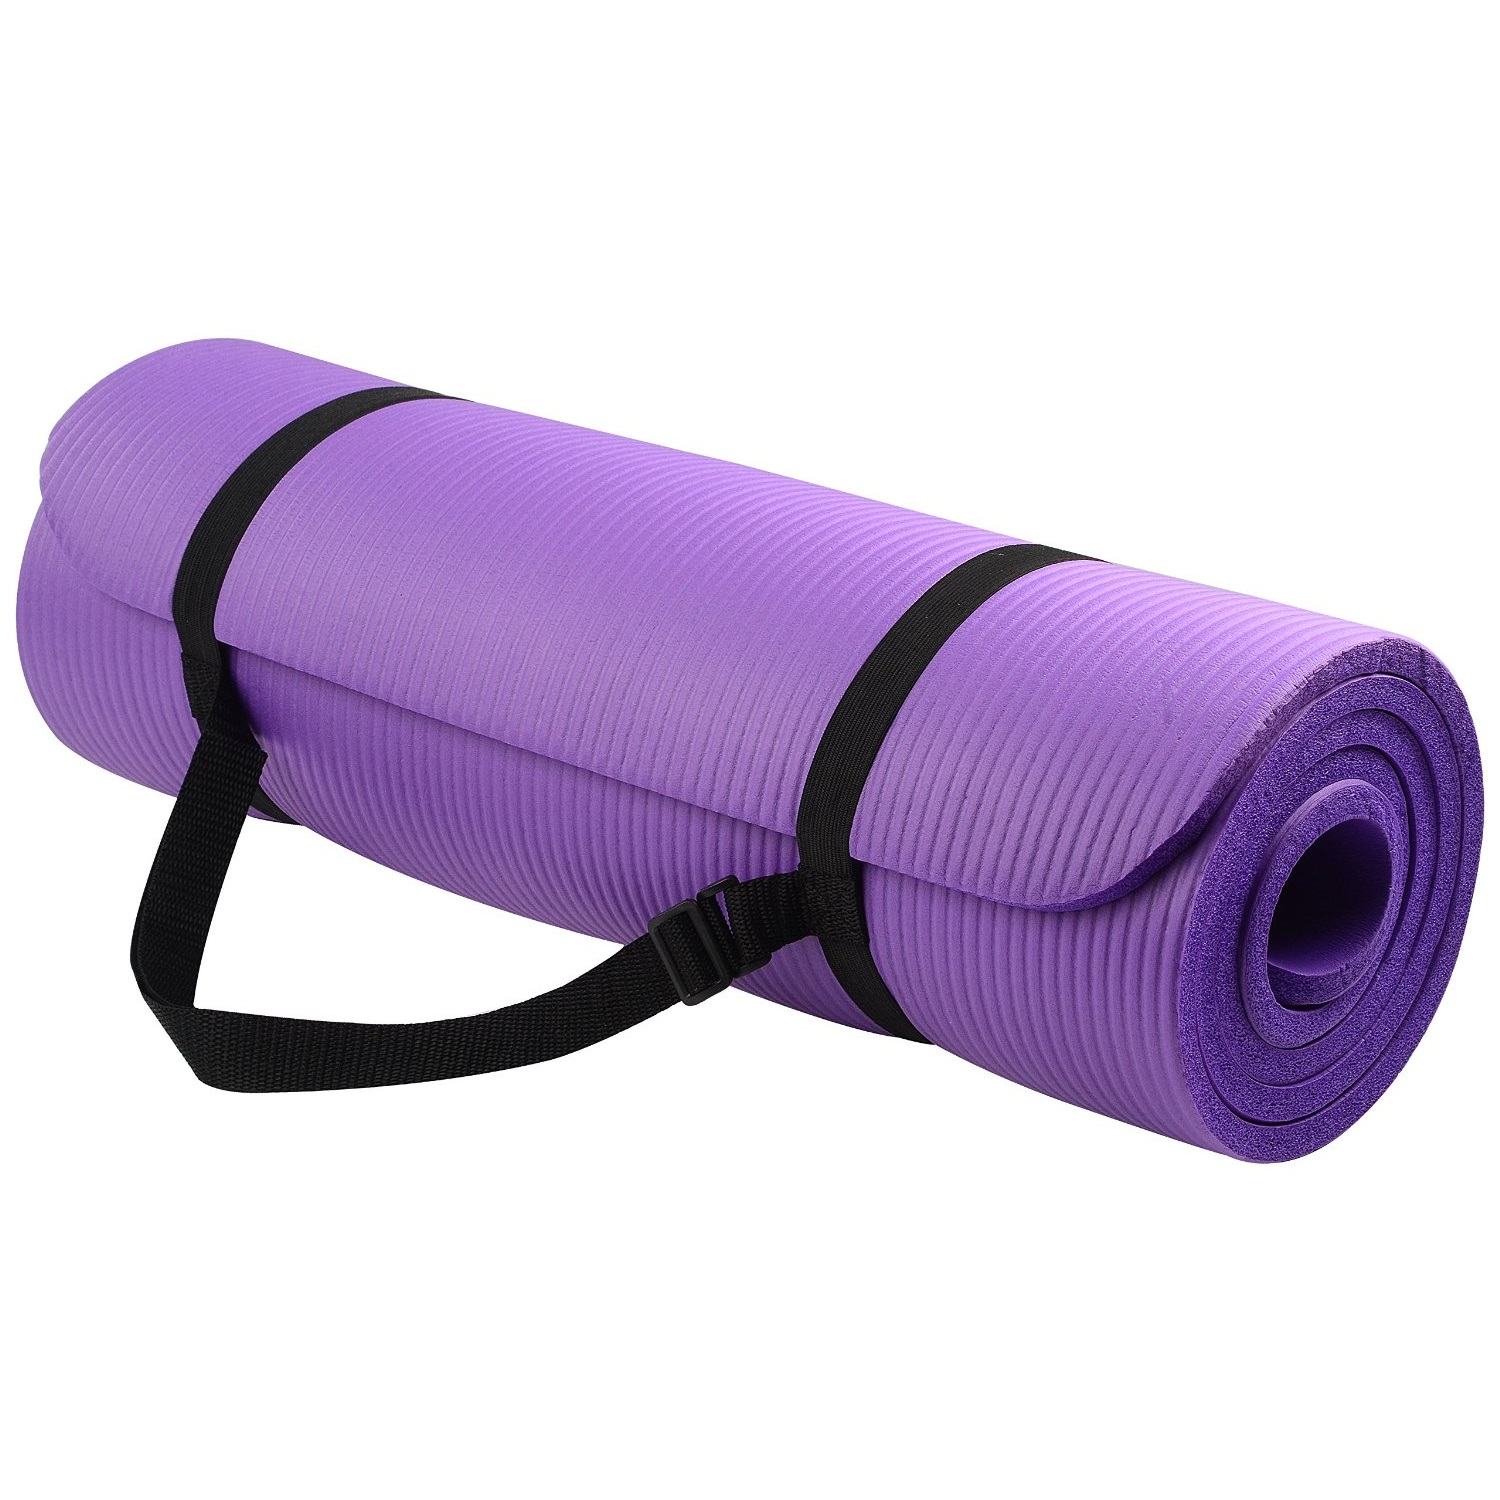 balancefrom goyoga 1/2 inch high density yoga mat with carrying strap purple